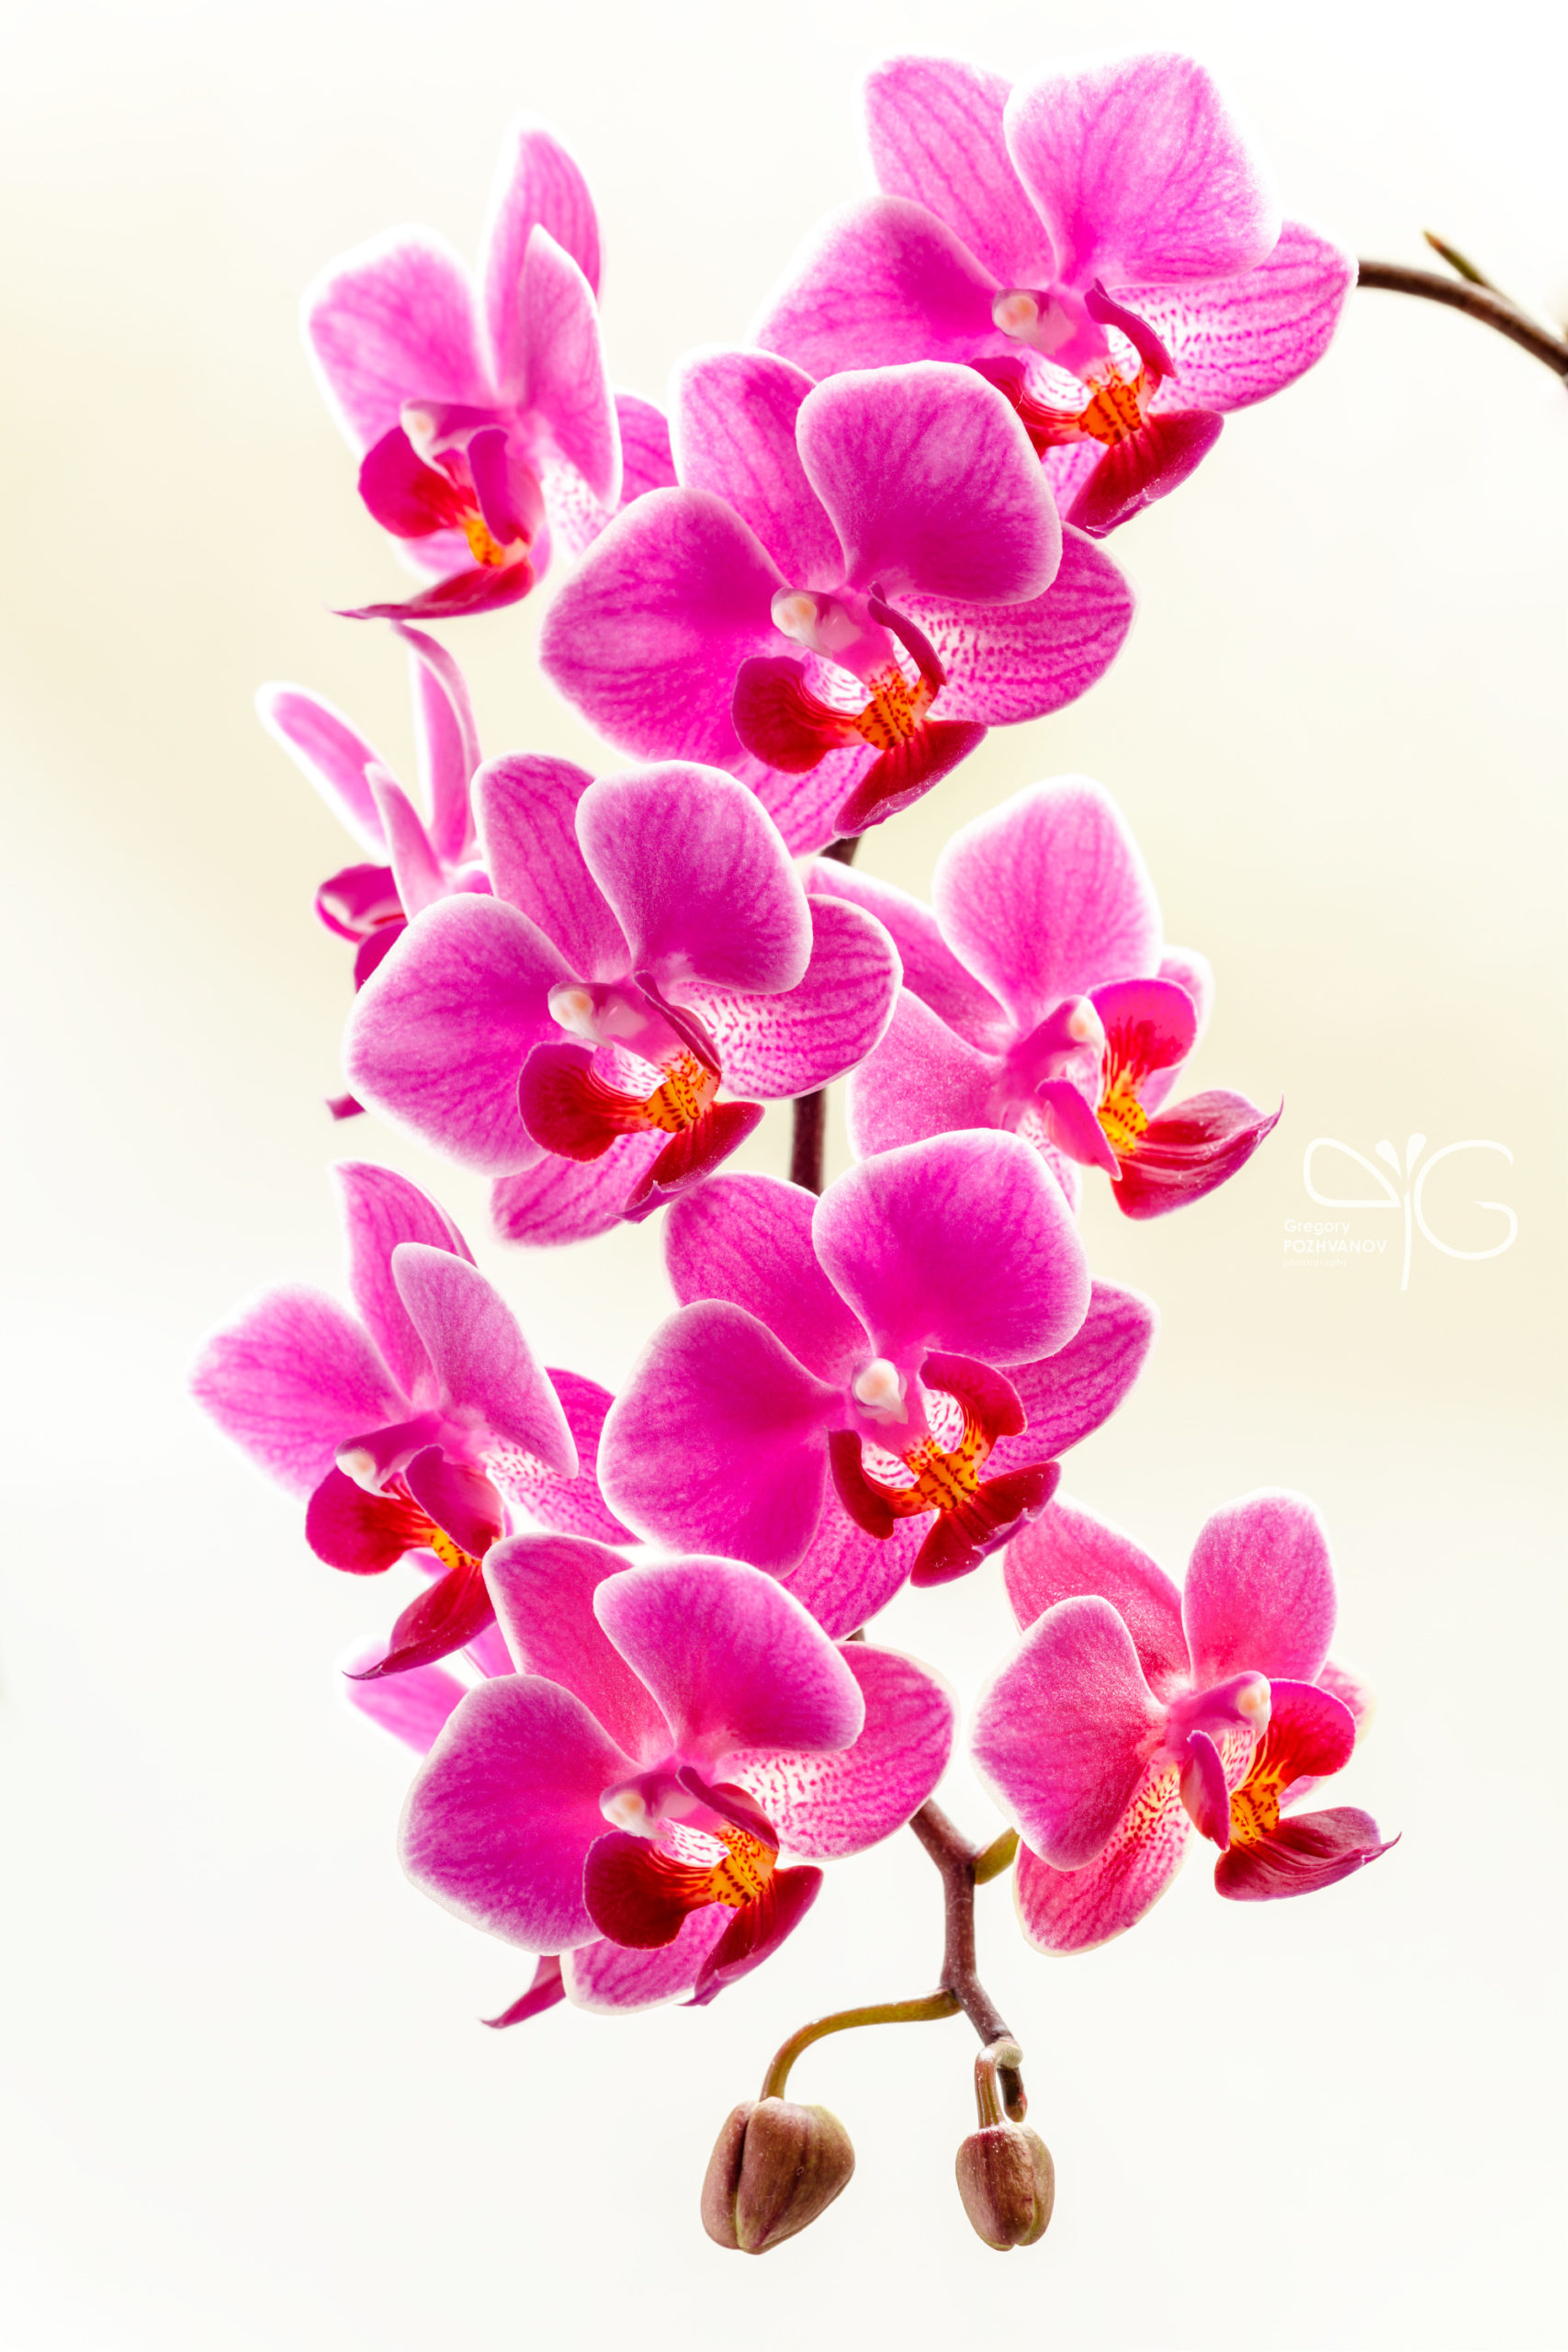 Flowering Phalaenopsis